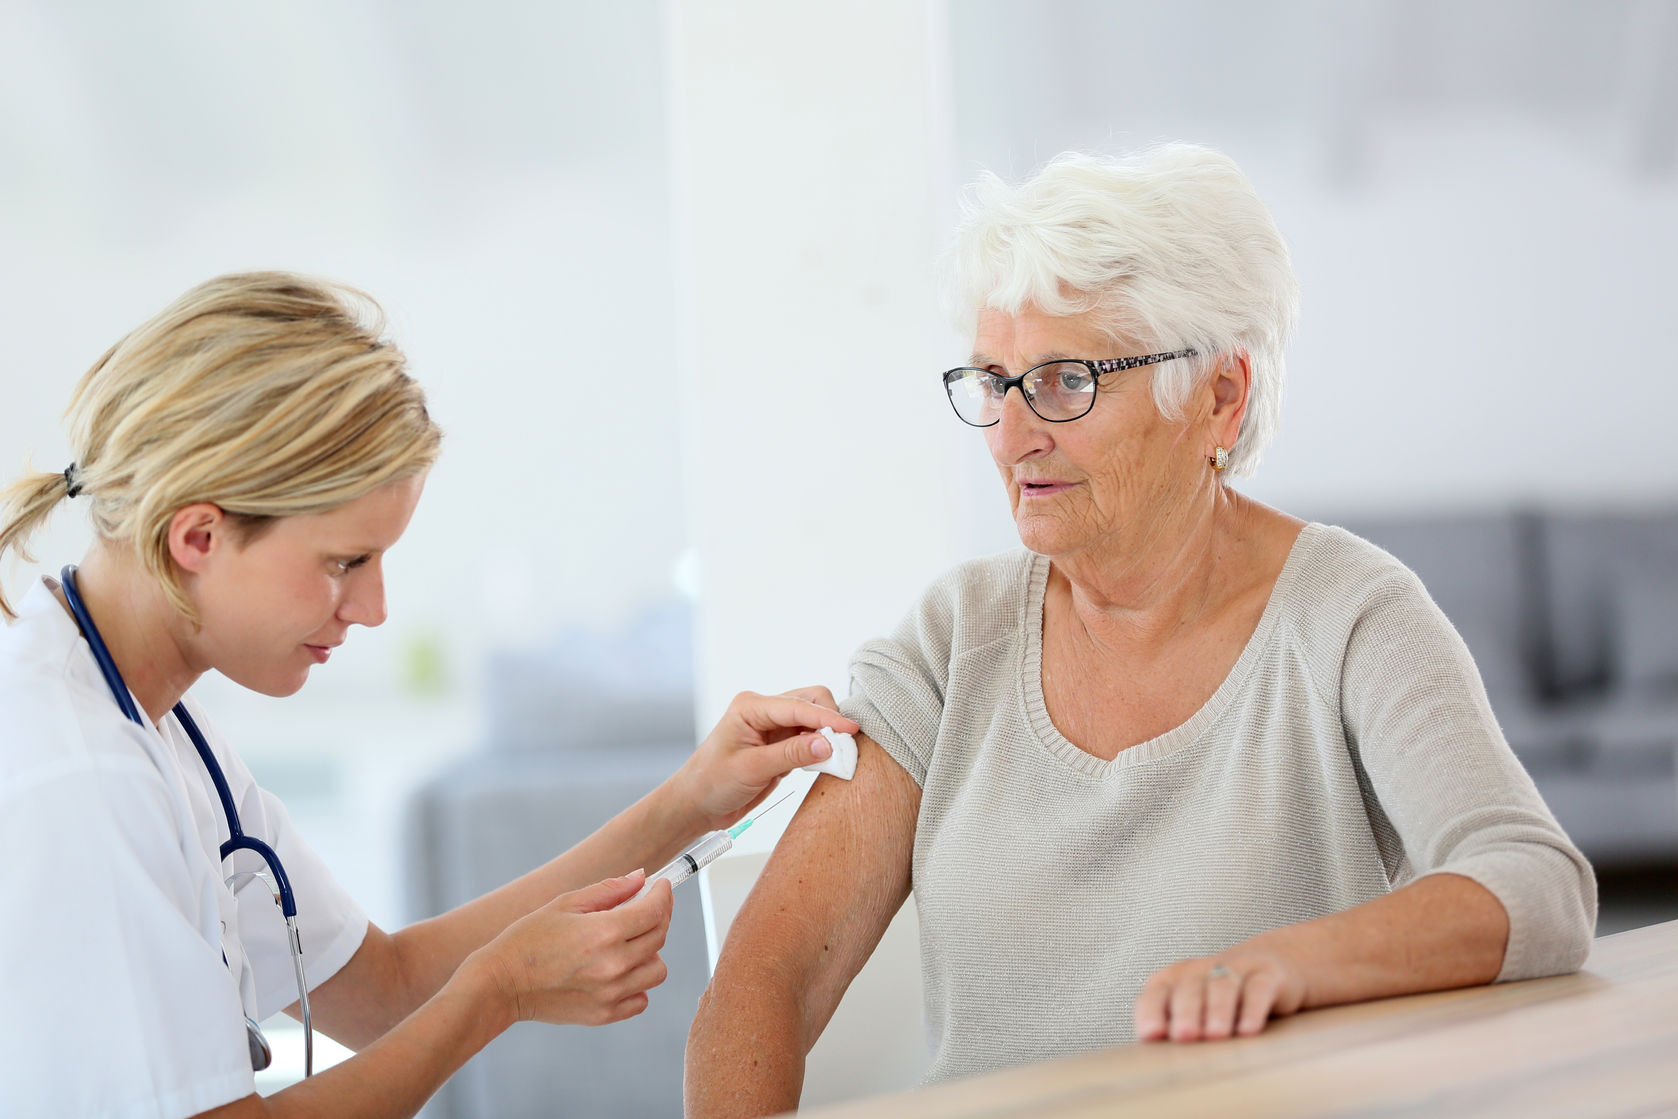 4 Things Cincinnati Seniors Should Do to Prepare for Flu Season